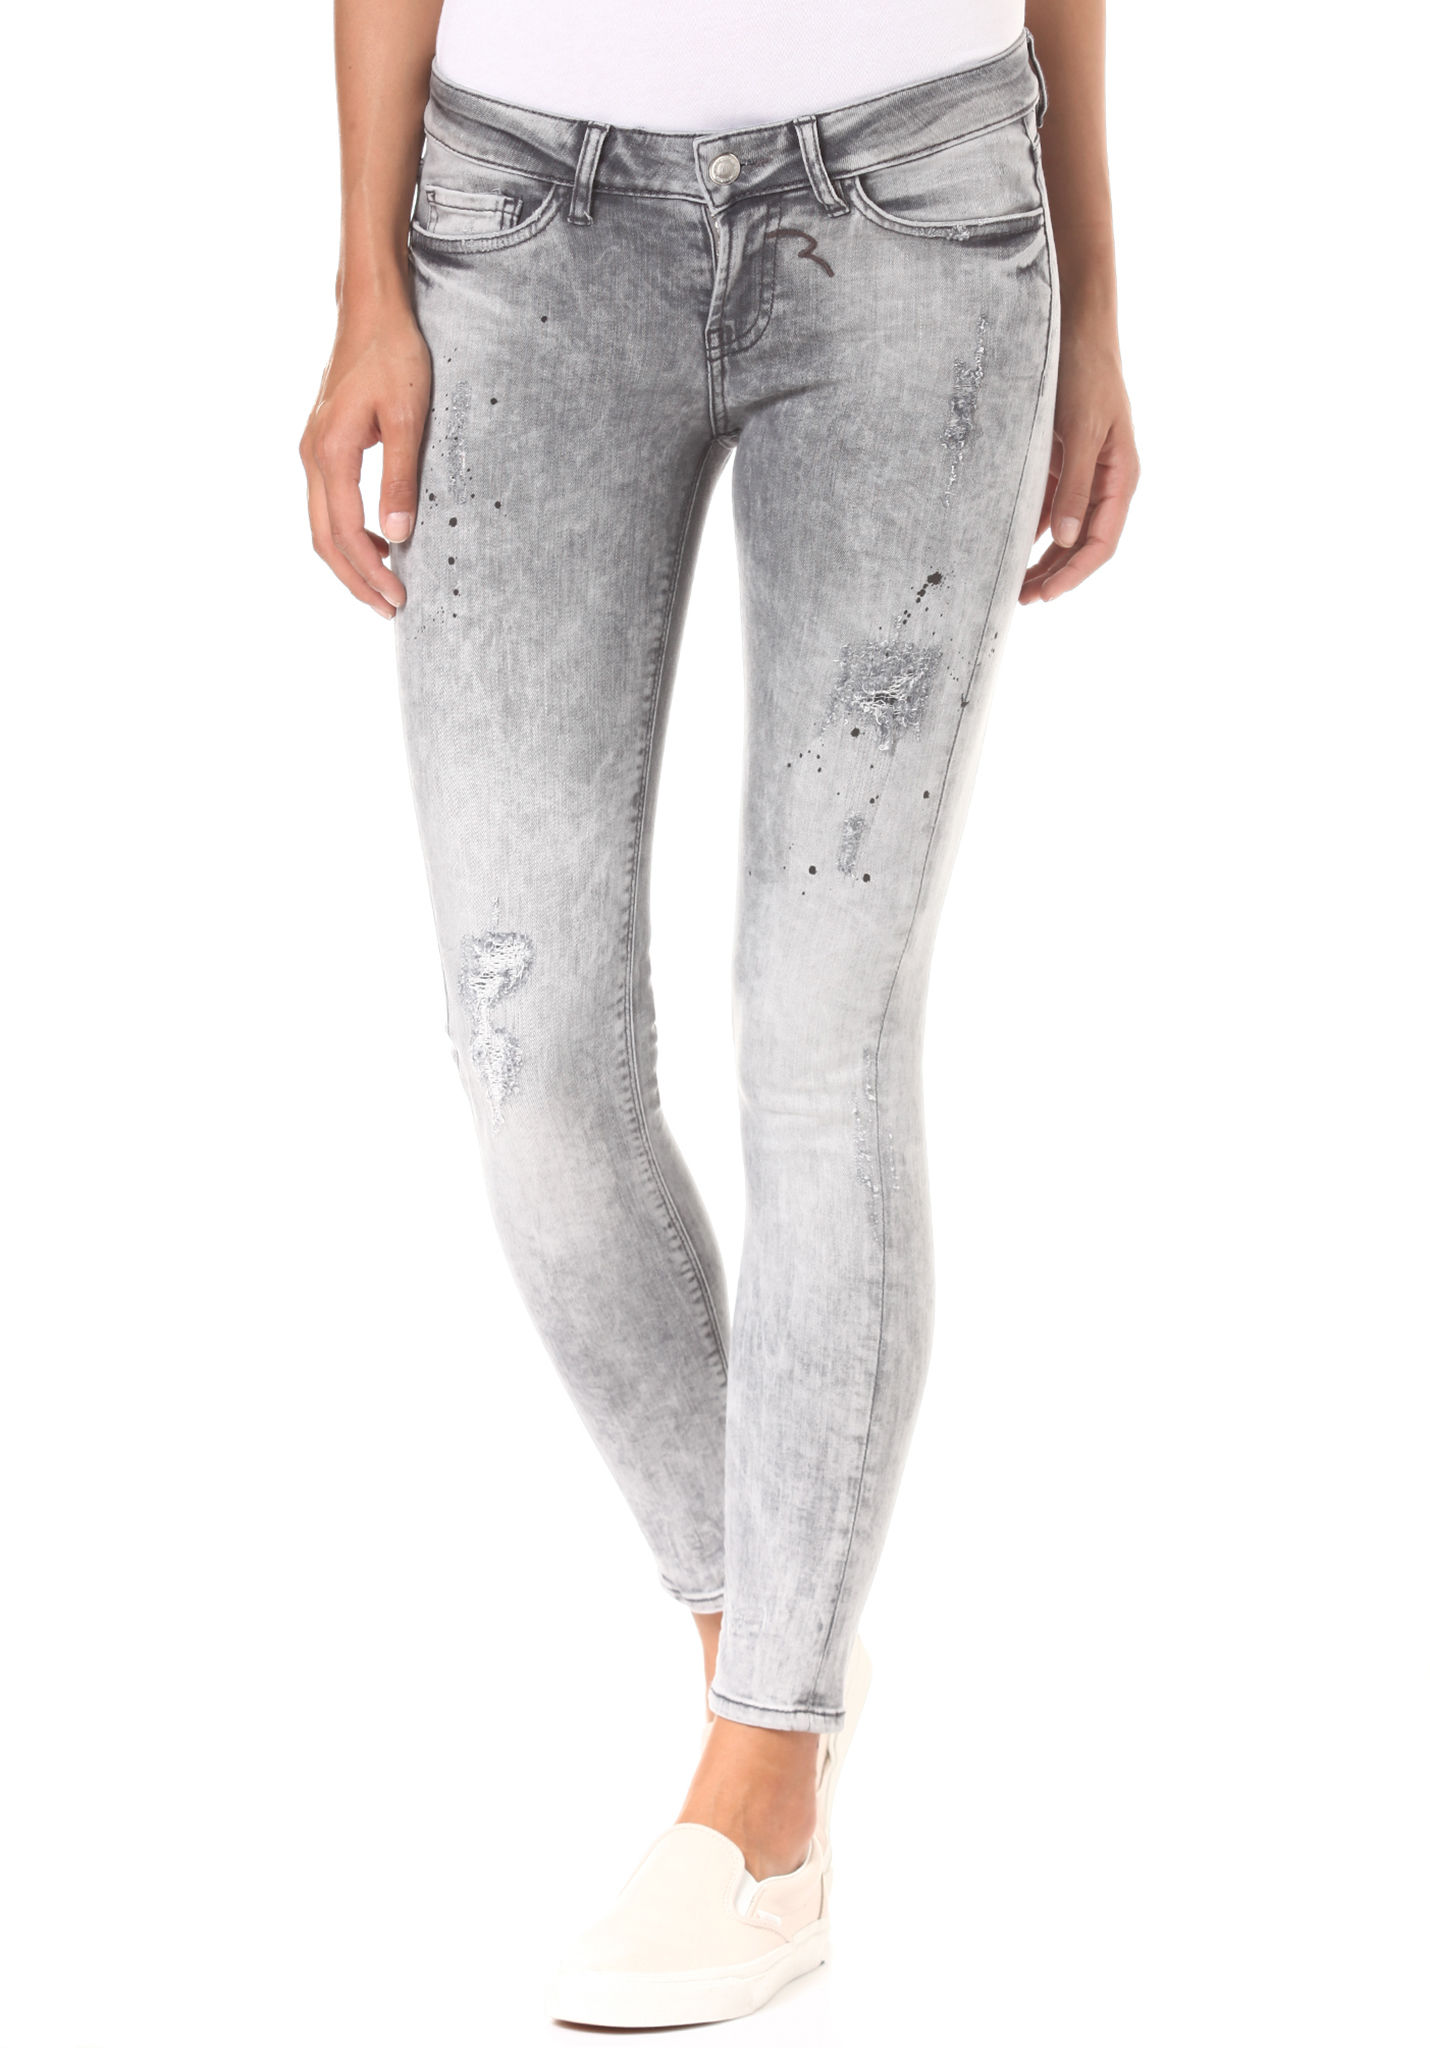 Rich   Royal Super Skinny - Painted Grey - Jeans für Damen - Grau - Planet  Sports ad1234e5c1